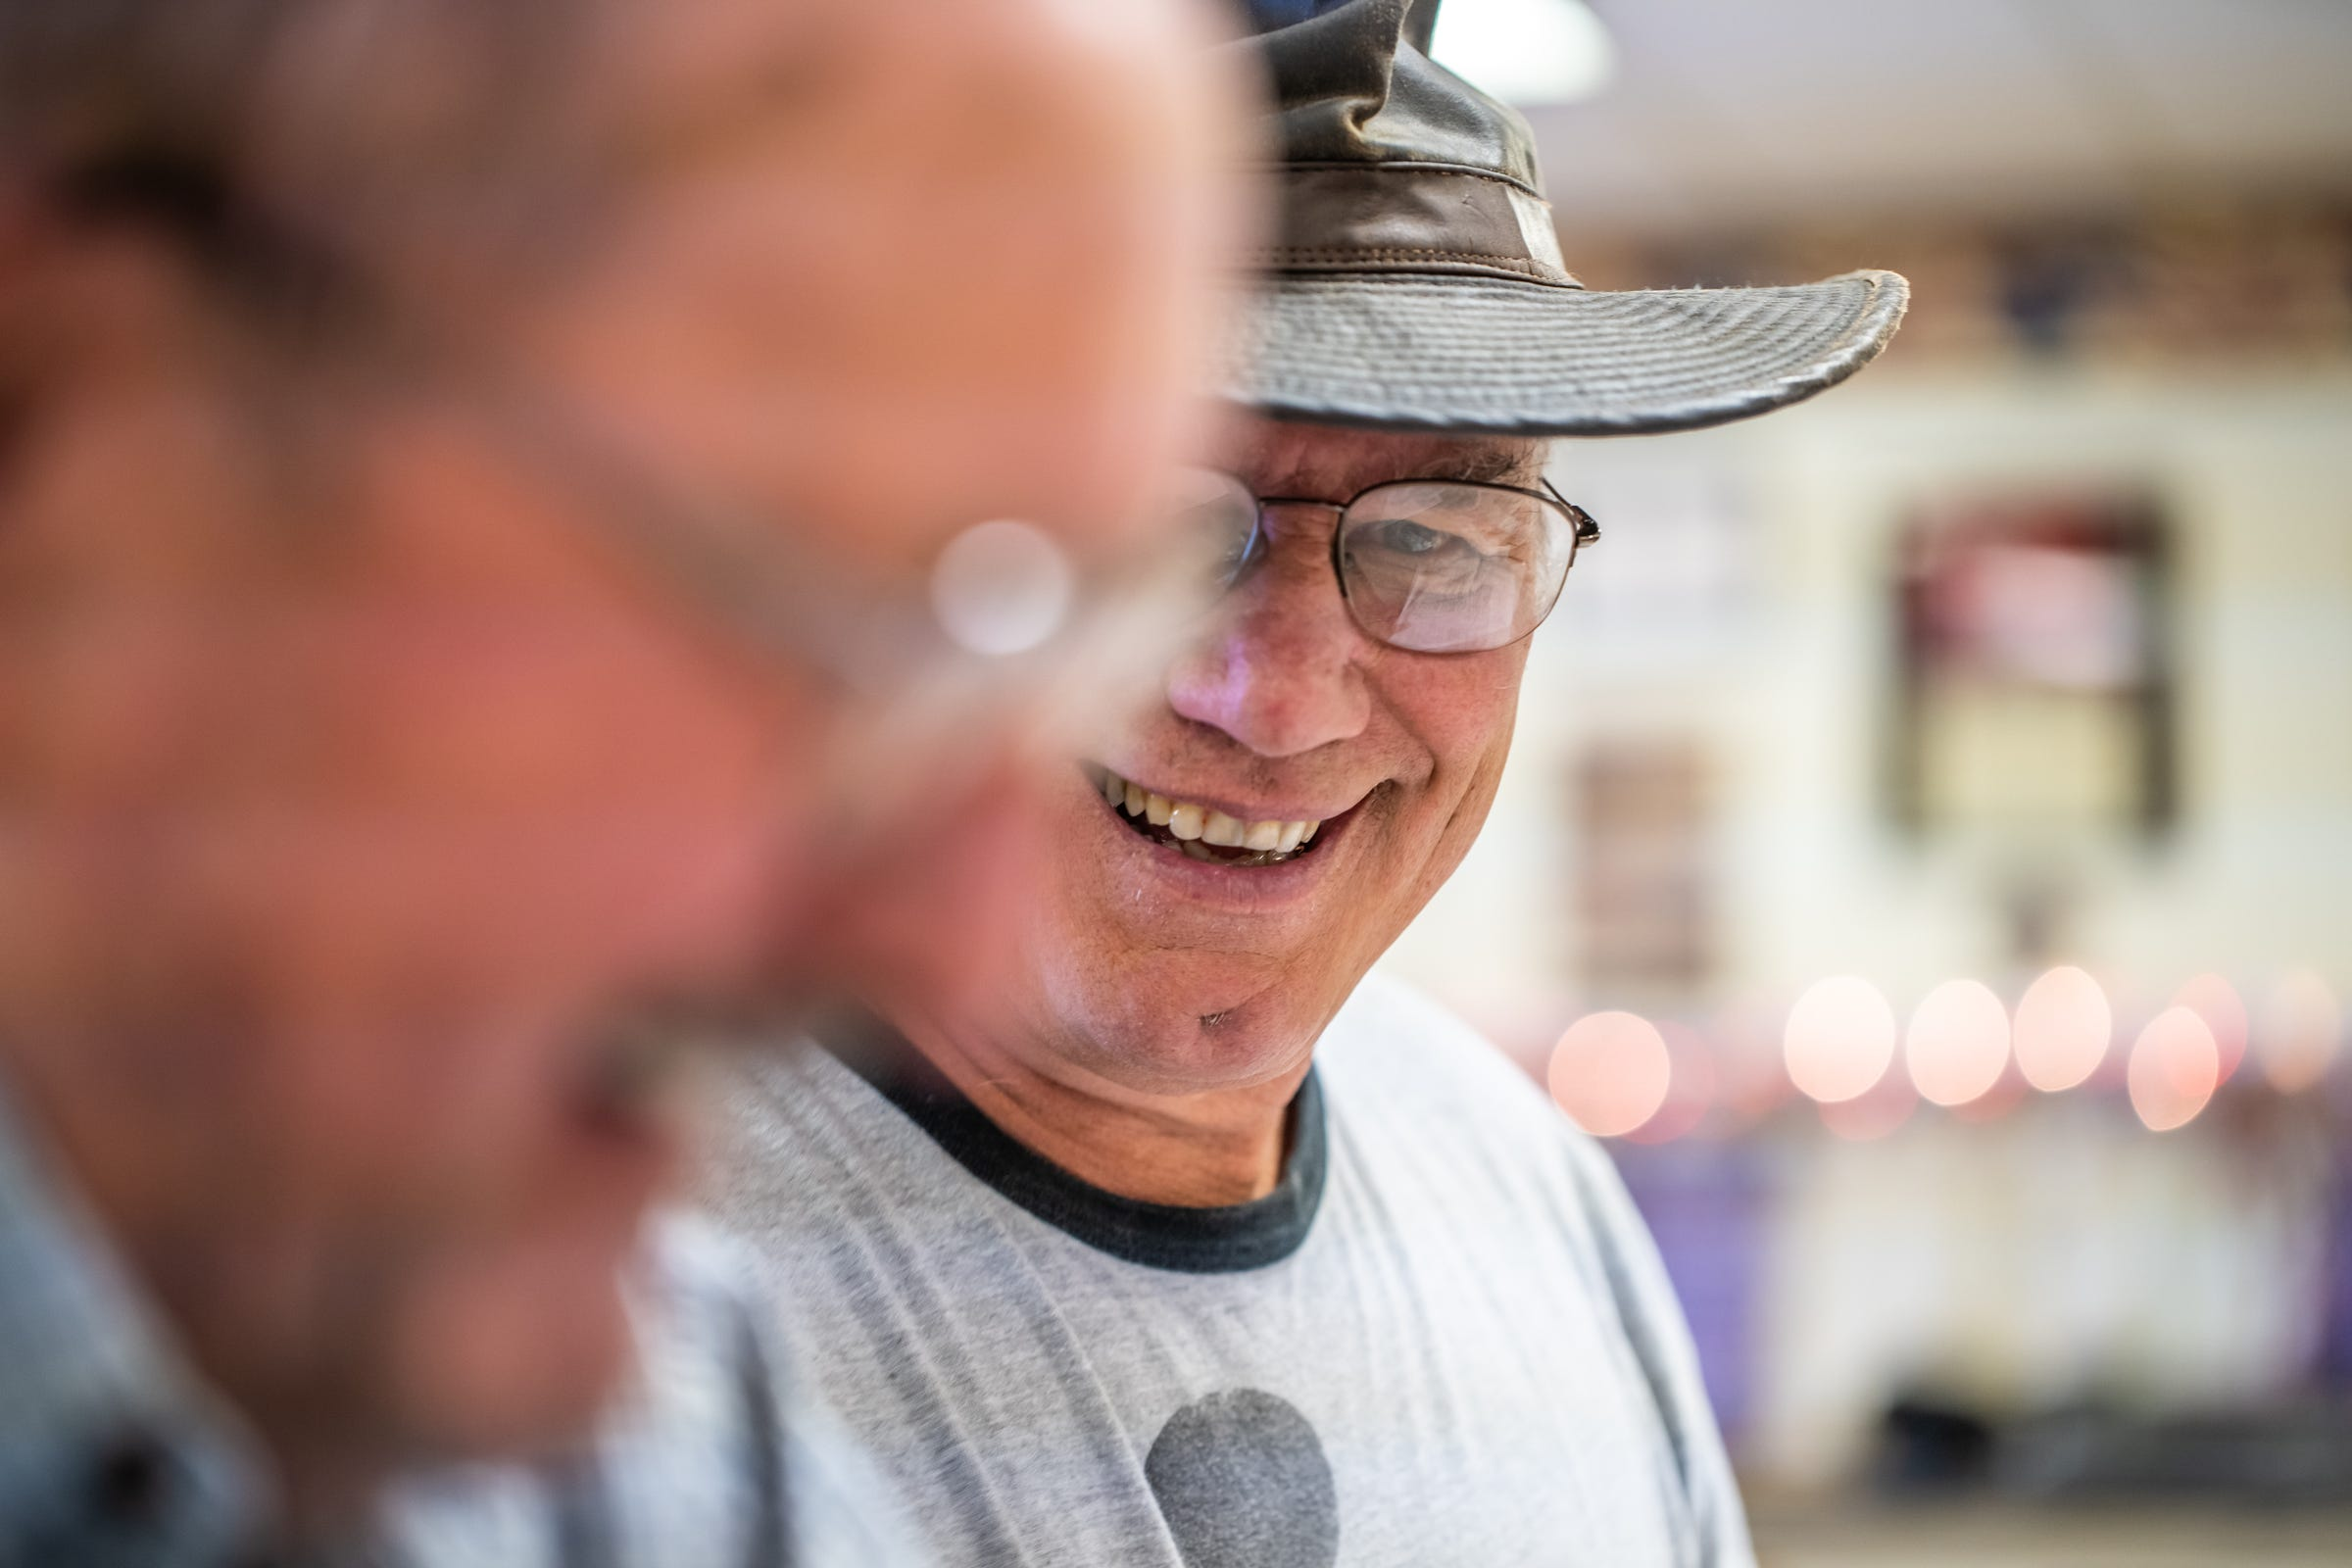 """VFW Post 4573 member Dennis Tonge (background), talks with others during a meeting at the hall in Ishpeming in Michigan's Upper Peninsula on Thursday, May 9, 2019.""""The biggest thing we got to start working on is how to draw the younger veterans in,"""" said Tonge, 66. He was soon taking over as commander."""